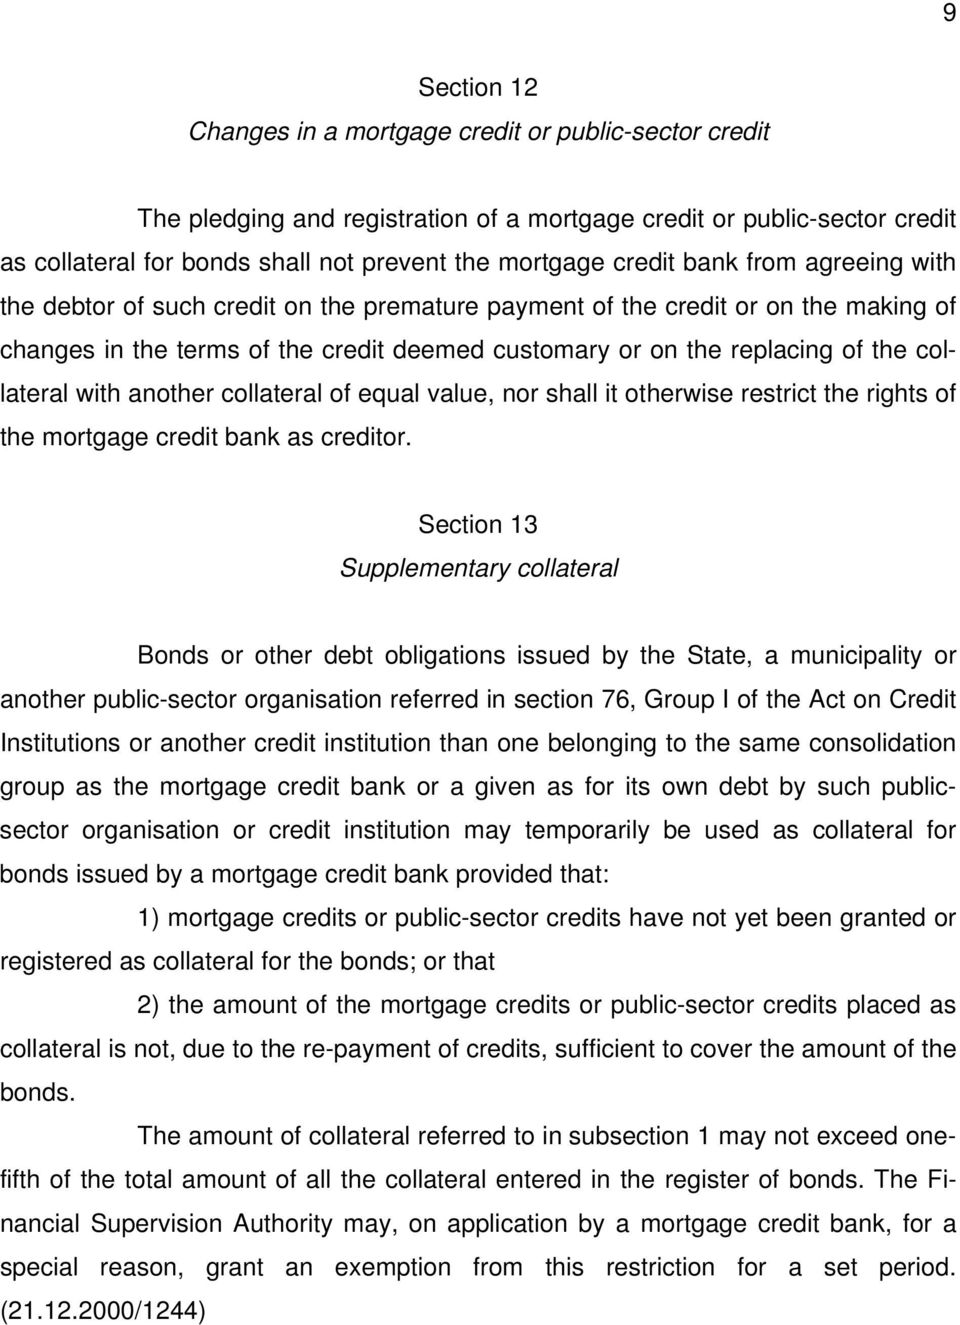 collateral with another collateral of equal value, nor shall it otherwise restrict the rights of the mortgage credit bank as creditor.